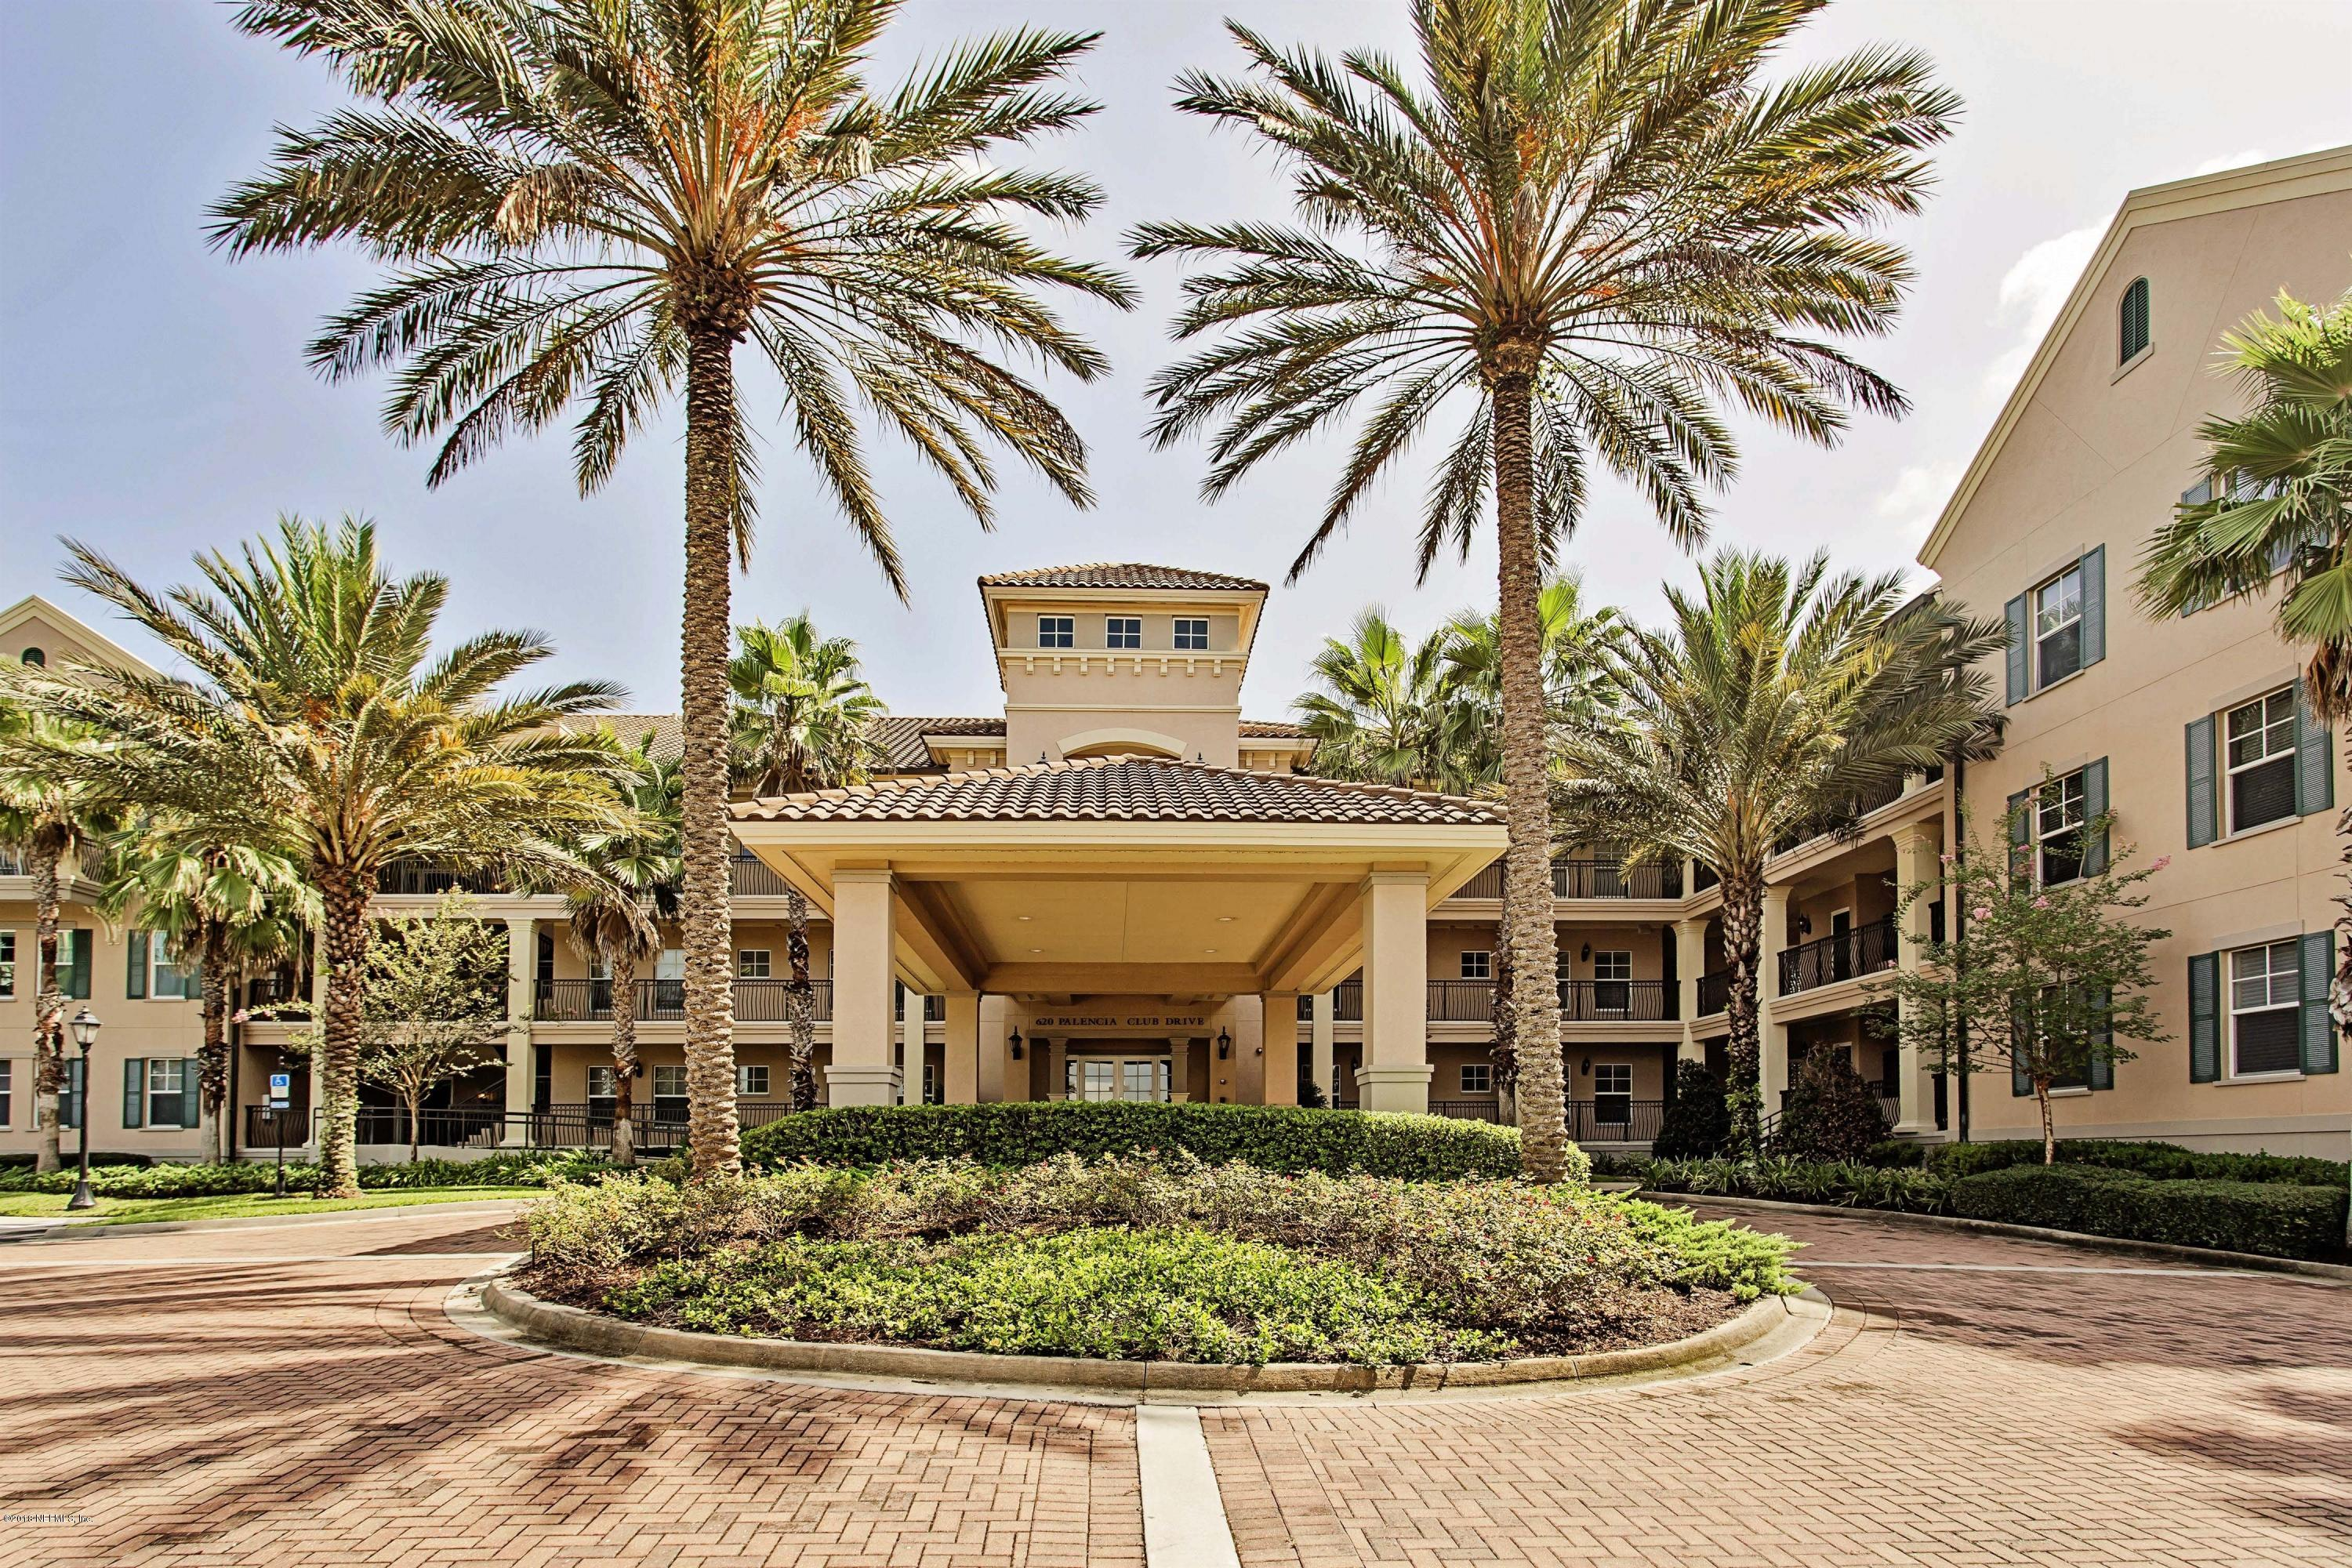 620 PALENCIA CLUB, ST AUGUSTINE, FLORIDA 32095, 3 Bedrooms Bedrooms, ,3 BathroomsBathrooms,Residential - condos/townhomes,For sale,PALENCIA CLUB,926962